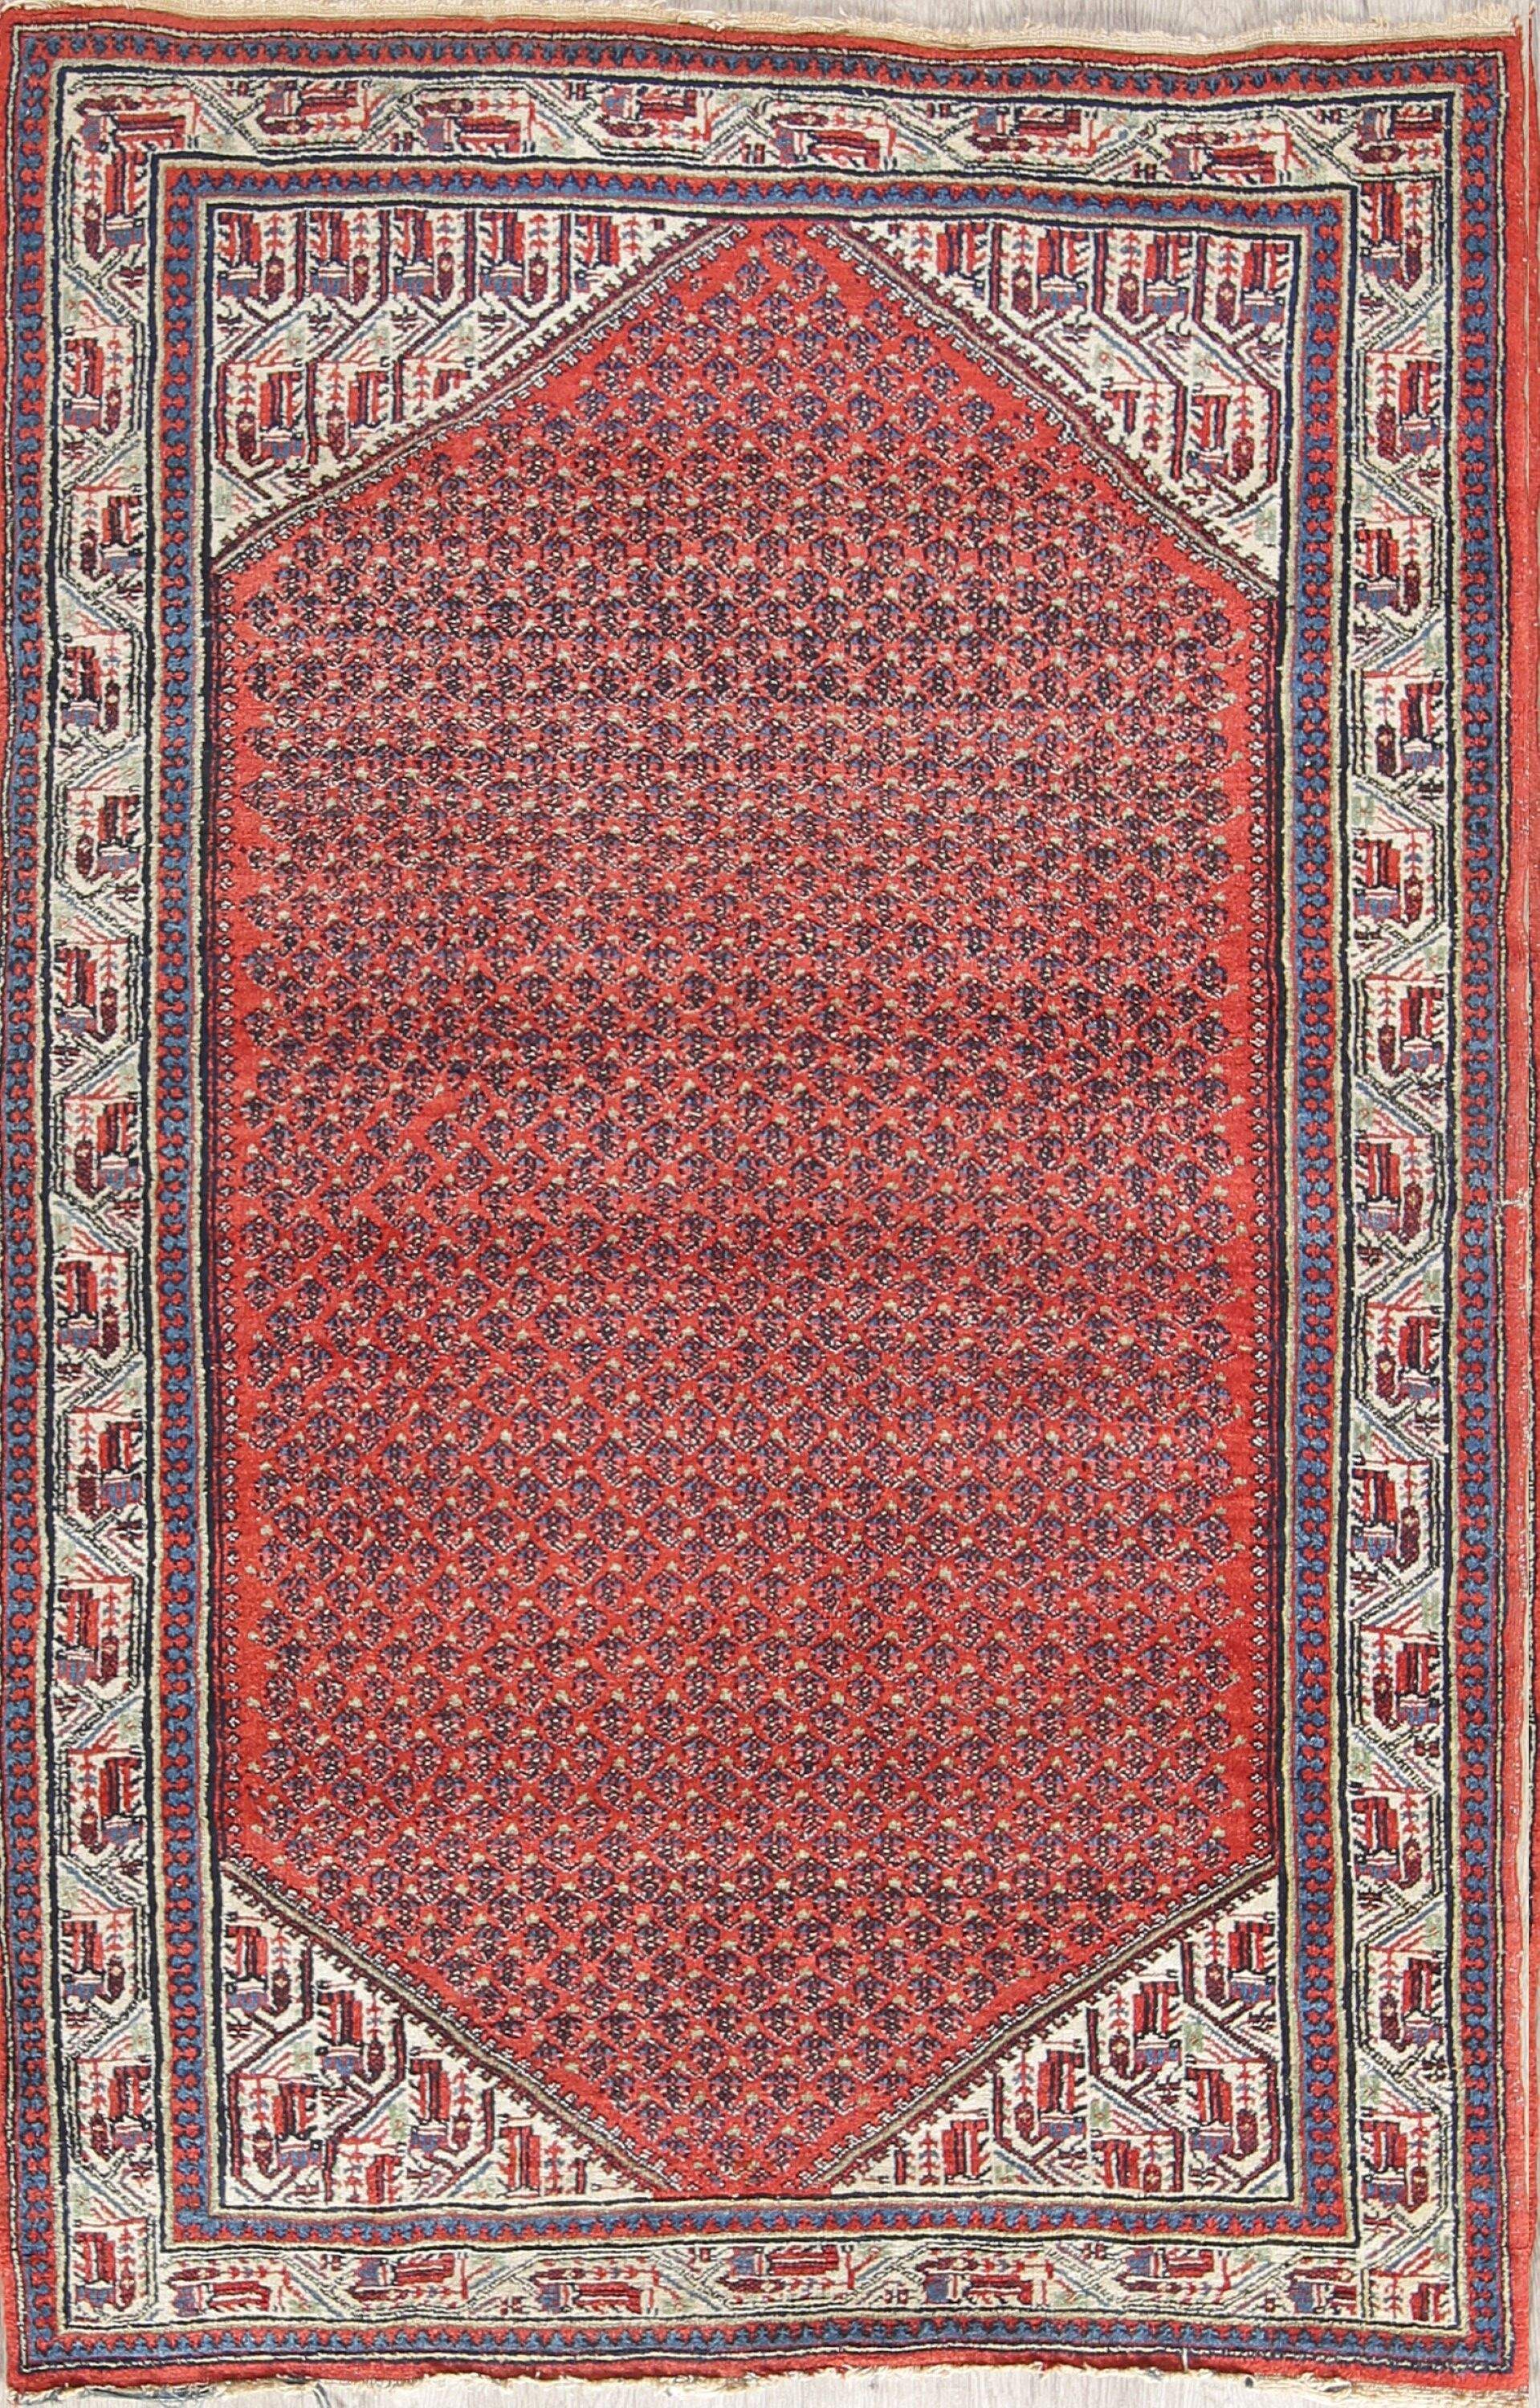 One-of-a-Kind Botemir Geometric Traditional Persian Hand-Knotted 4'4